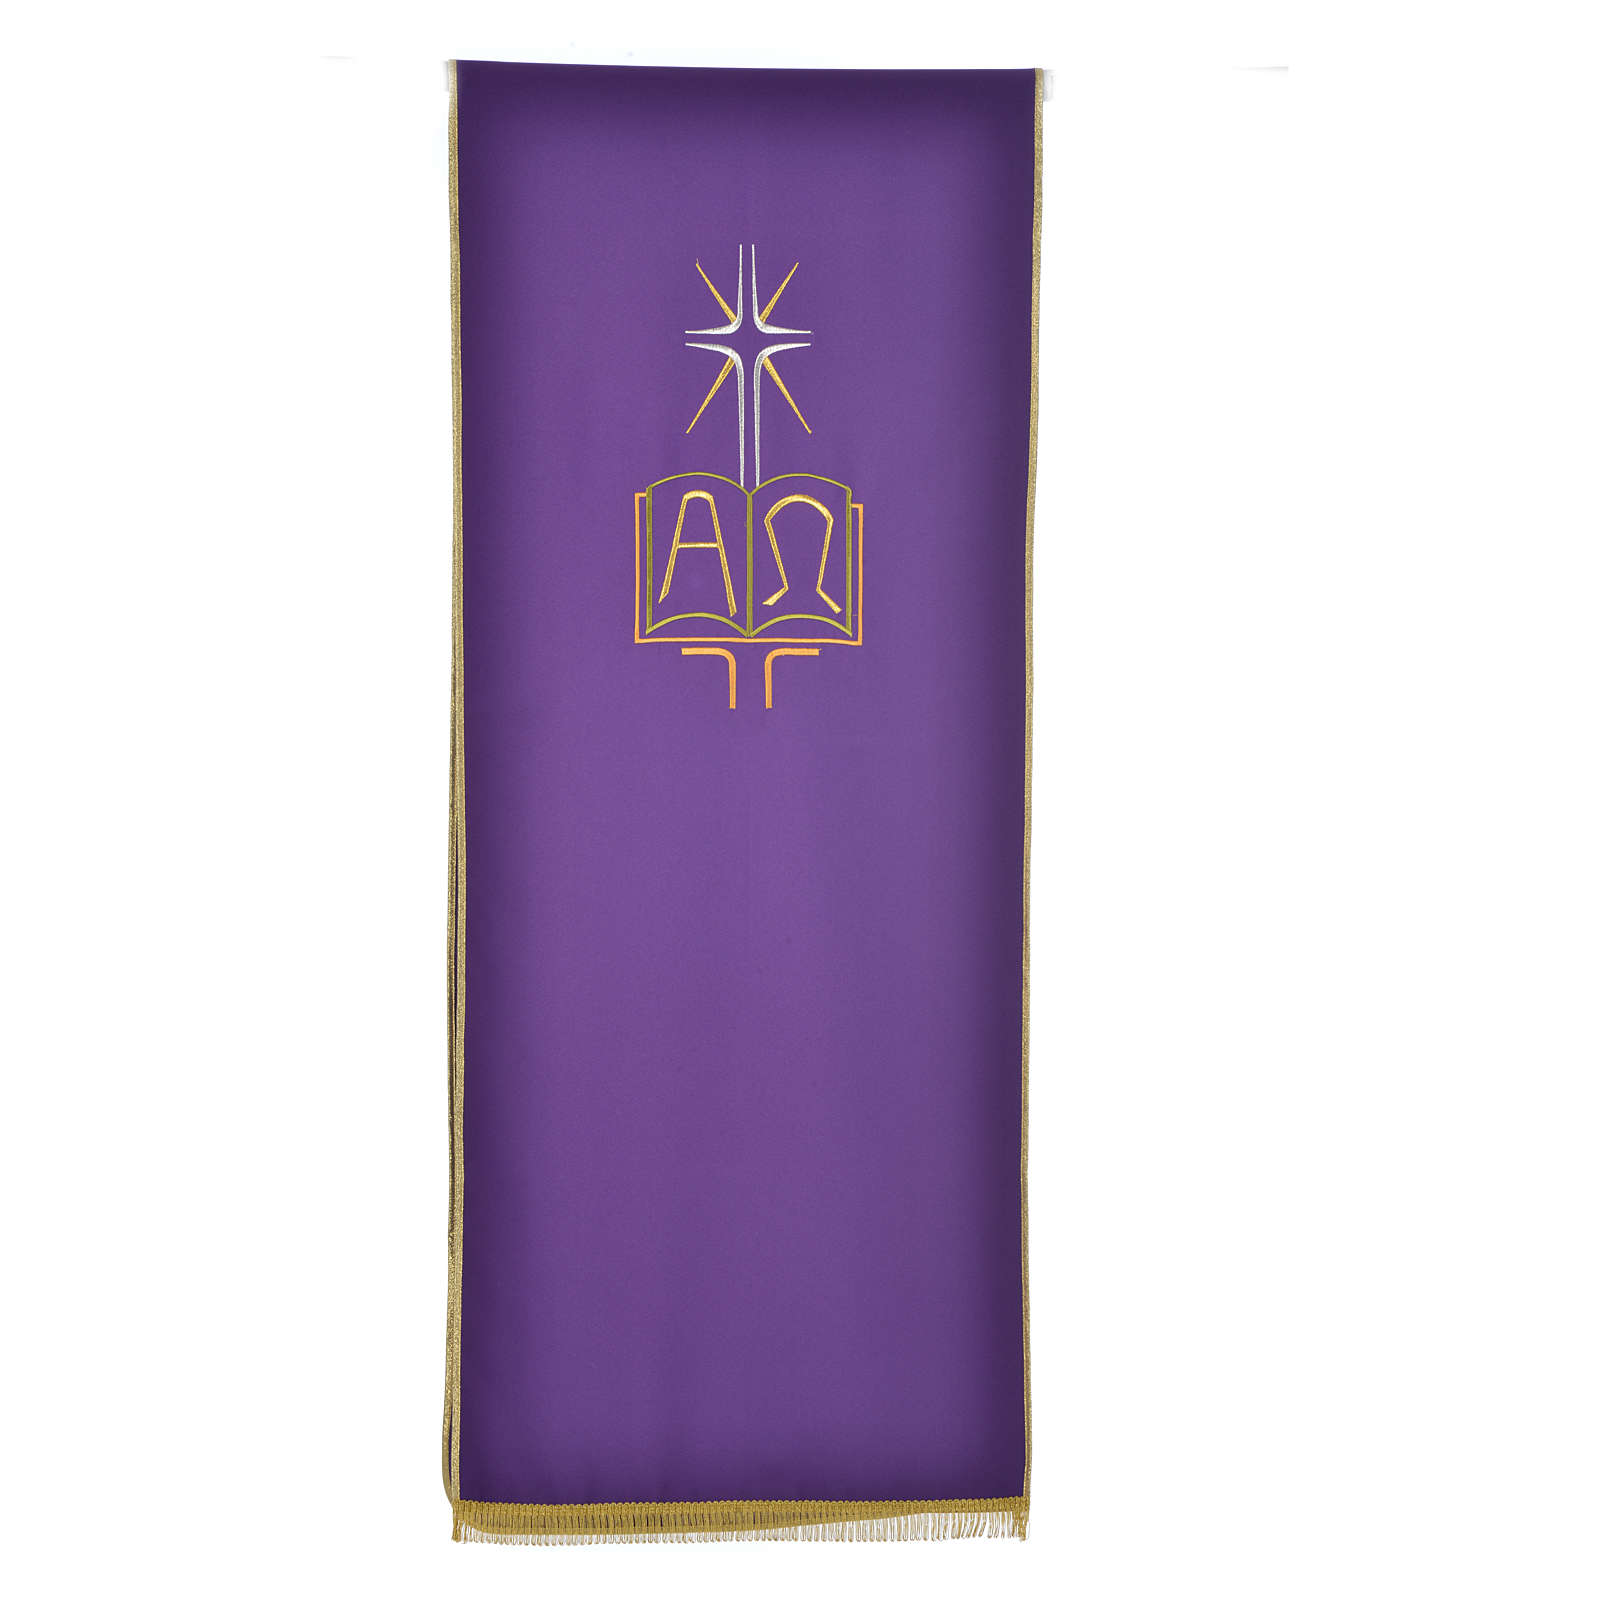 Lectern Cover in polyester, book Alpha and Omega 4